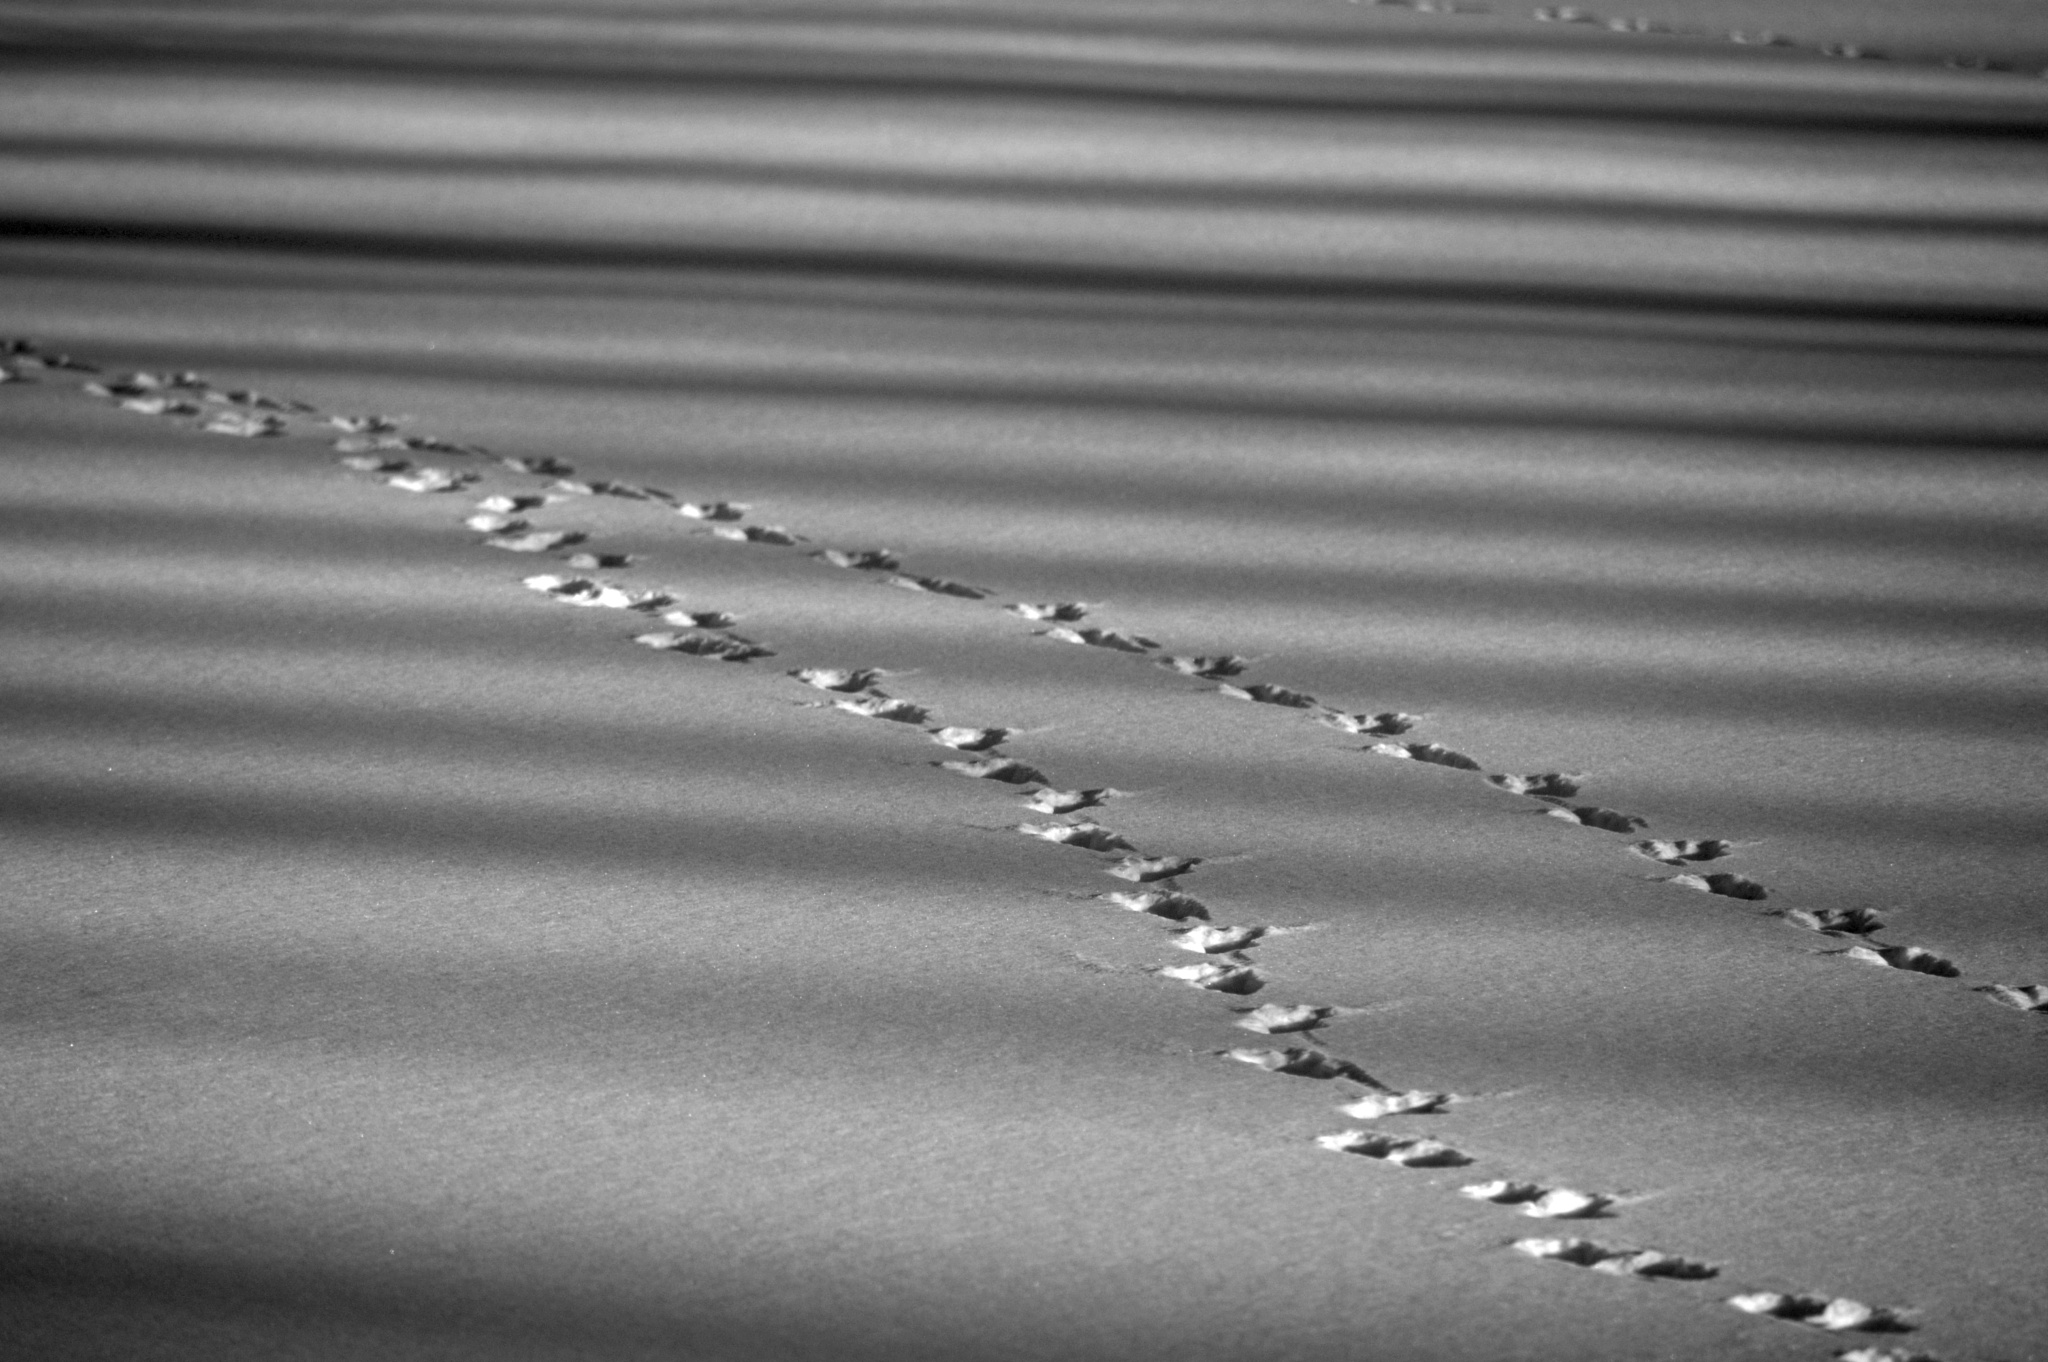 Tracks Across a Frozen Pond by James R McWilliams